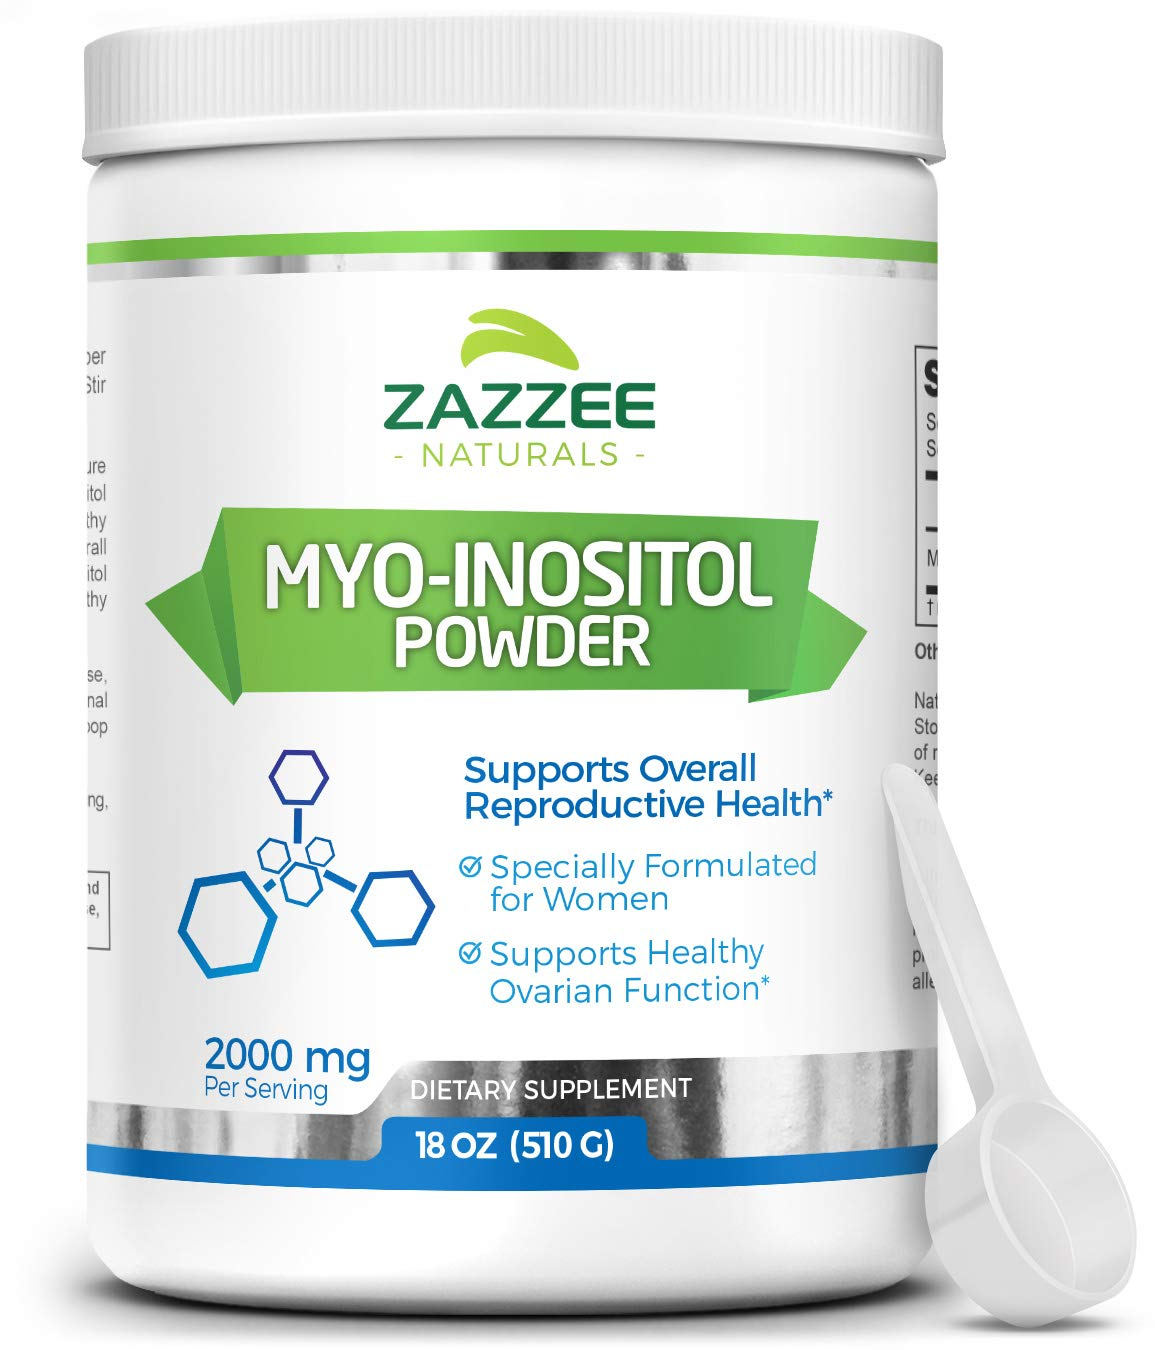 Zazzee Myo-Inositol Powder, 255 Servings, 18 Ounces (510 g), 2000 mg per Serving, Includes Free Scoop for Exact Dosage, 100% Pure, Vegan and Non-GMO